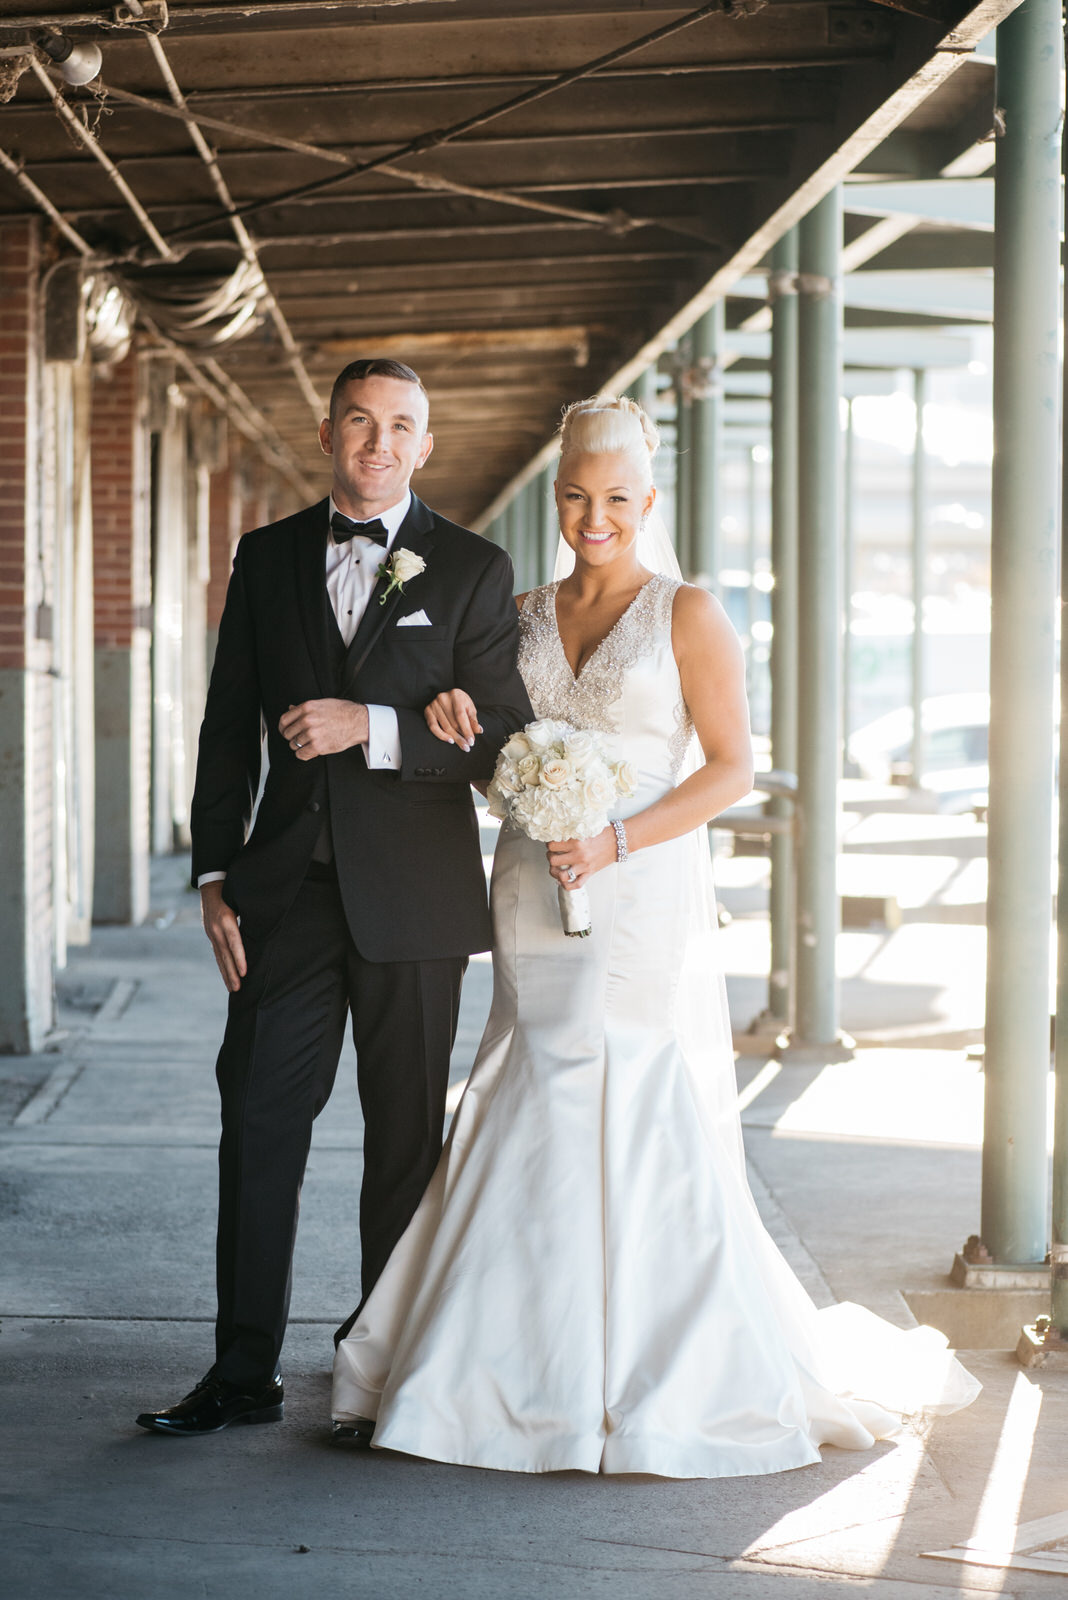 hilton_garden_inn_southpointe_pittsburgh_weddings_61.jpg